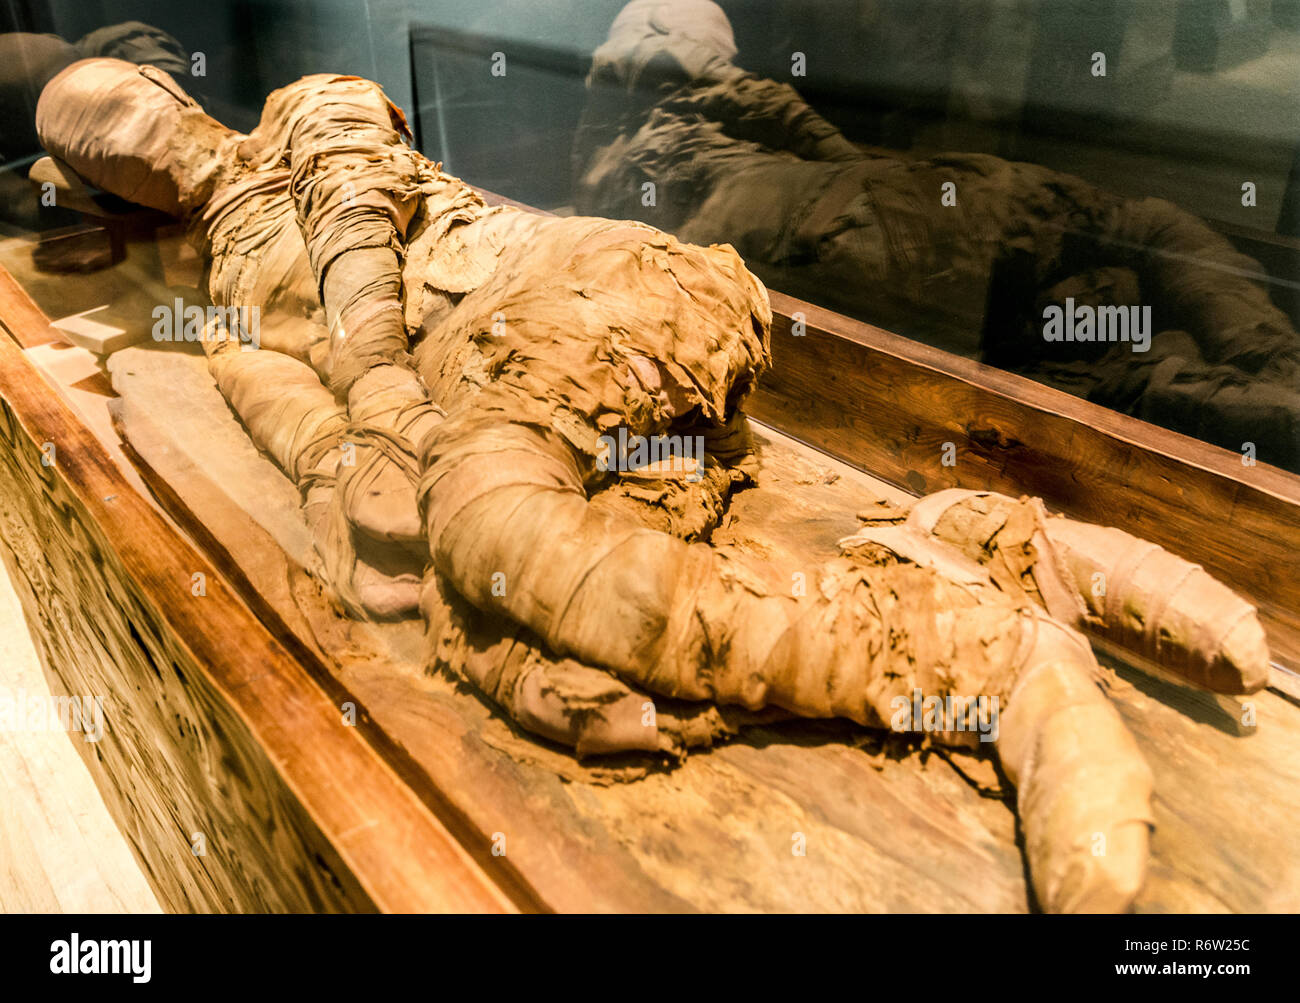 An Egyptian mummy circa 2300 B.C. reclines in a display case at the Michael C. Carlos Museum at Emory University, July 8, 2014, in Atlanta, Georgia. Stock Photo